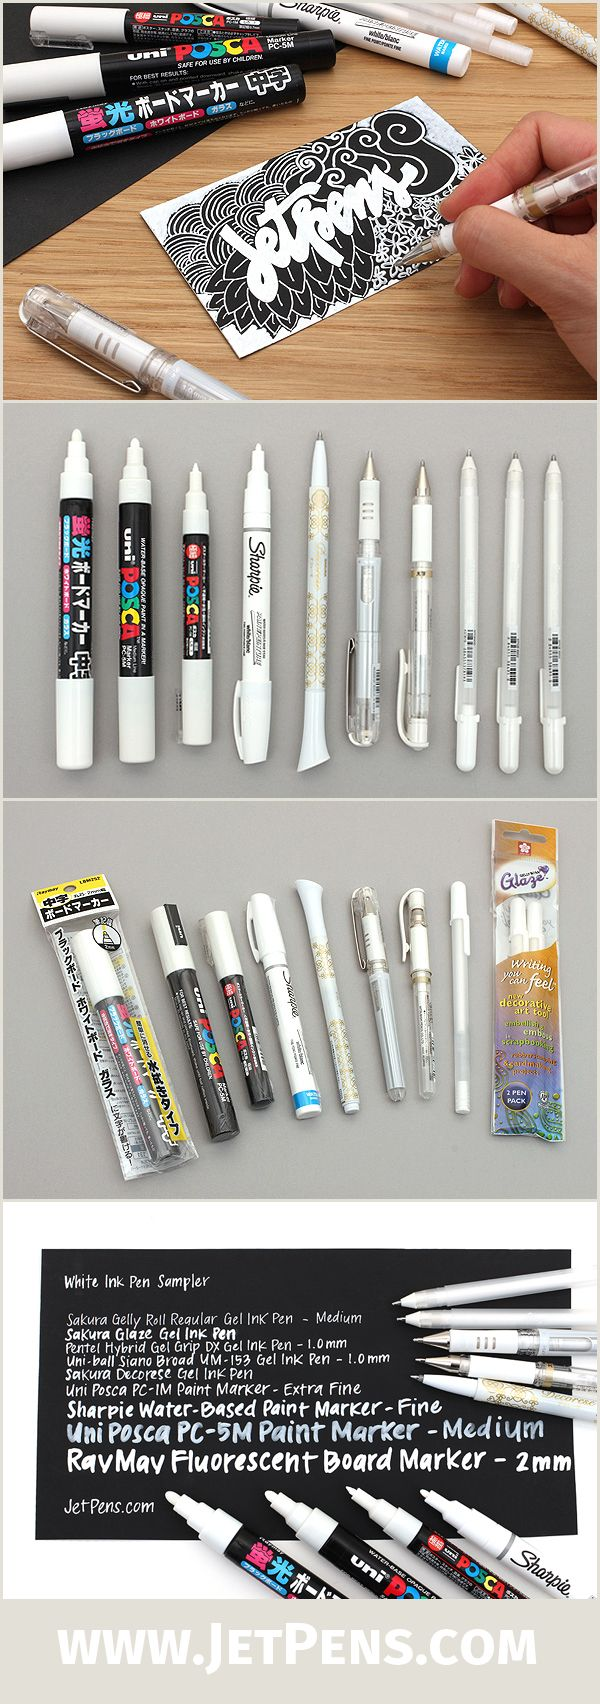 Paint pens for wood crafts - The Jetpens White Ink Pen Sampler Is Great For Artists Scrapbookers And Cartoonists